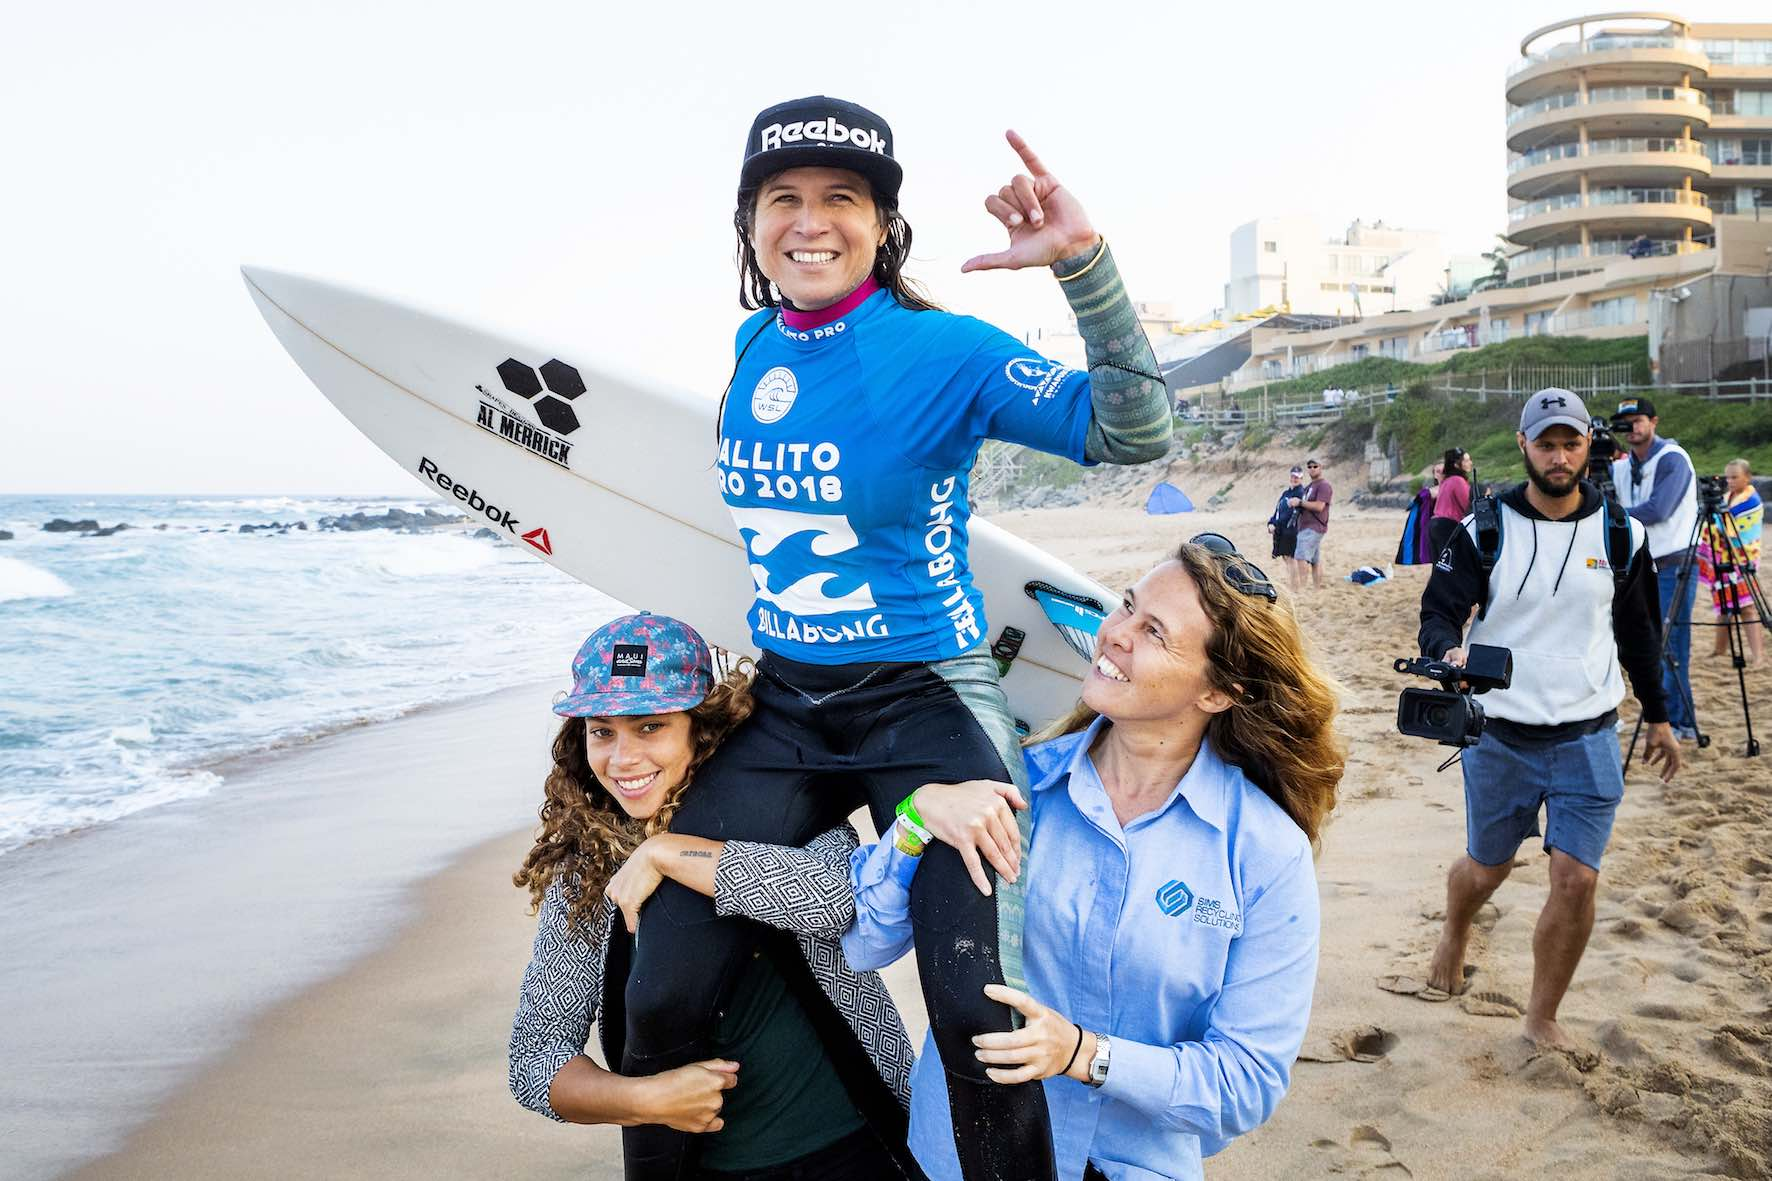 Sofia Mulanovich surfing her way to victory at the 2018 Ballito Women's Pro